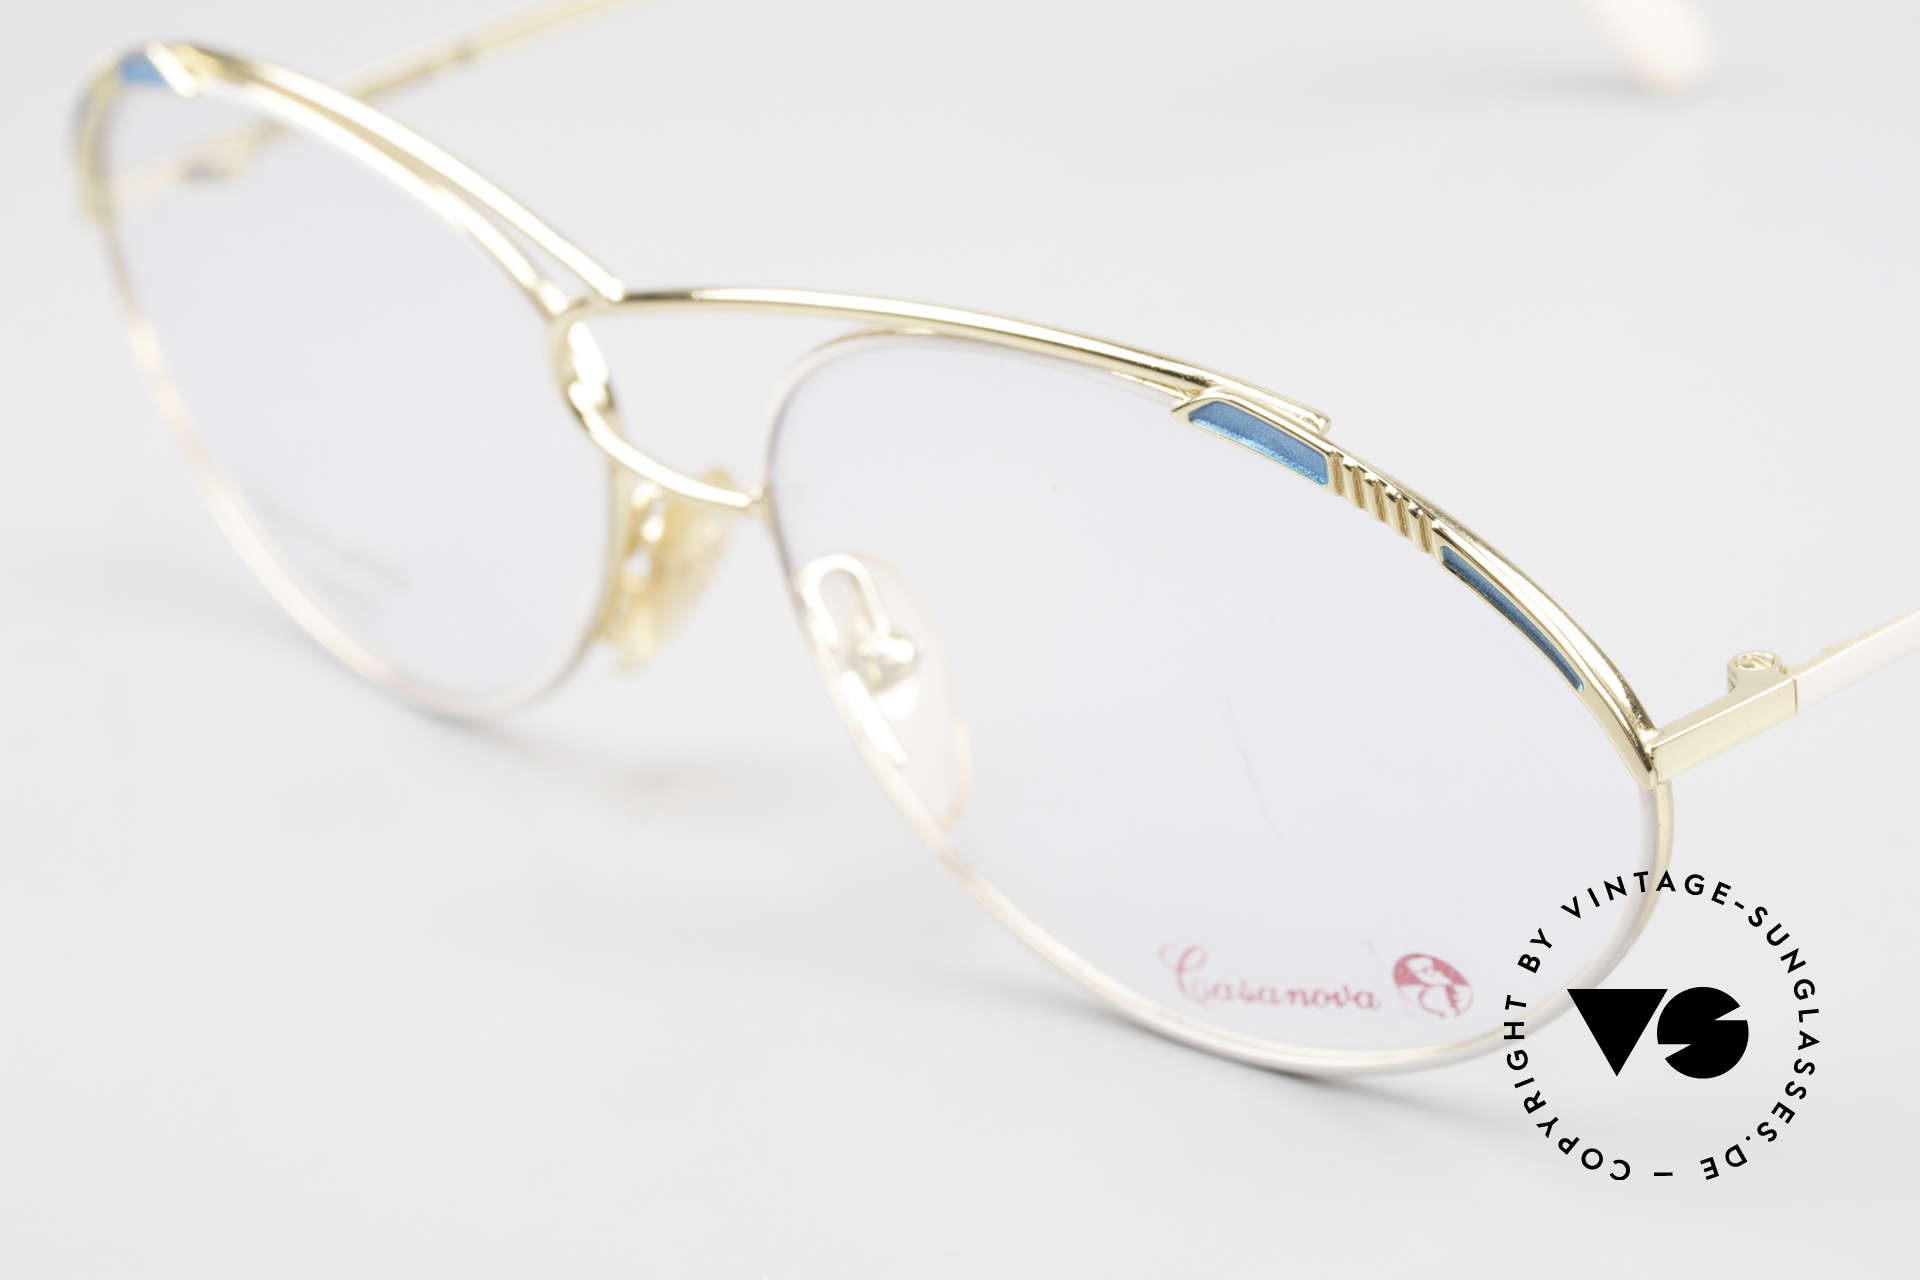 Casanova LC13 24kt Gold Plated Vintage Frame, a true rarity and collector's item (belongs in a museum), Made for Women